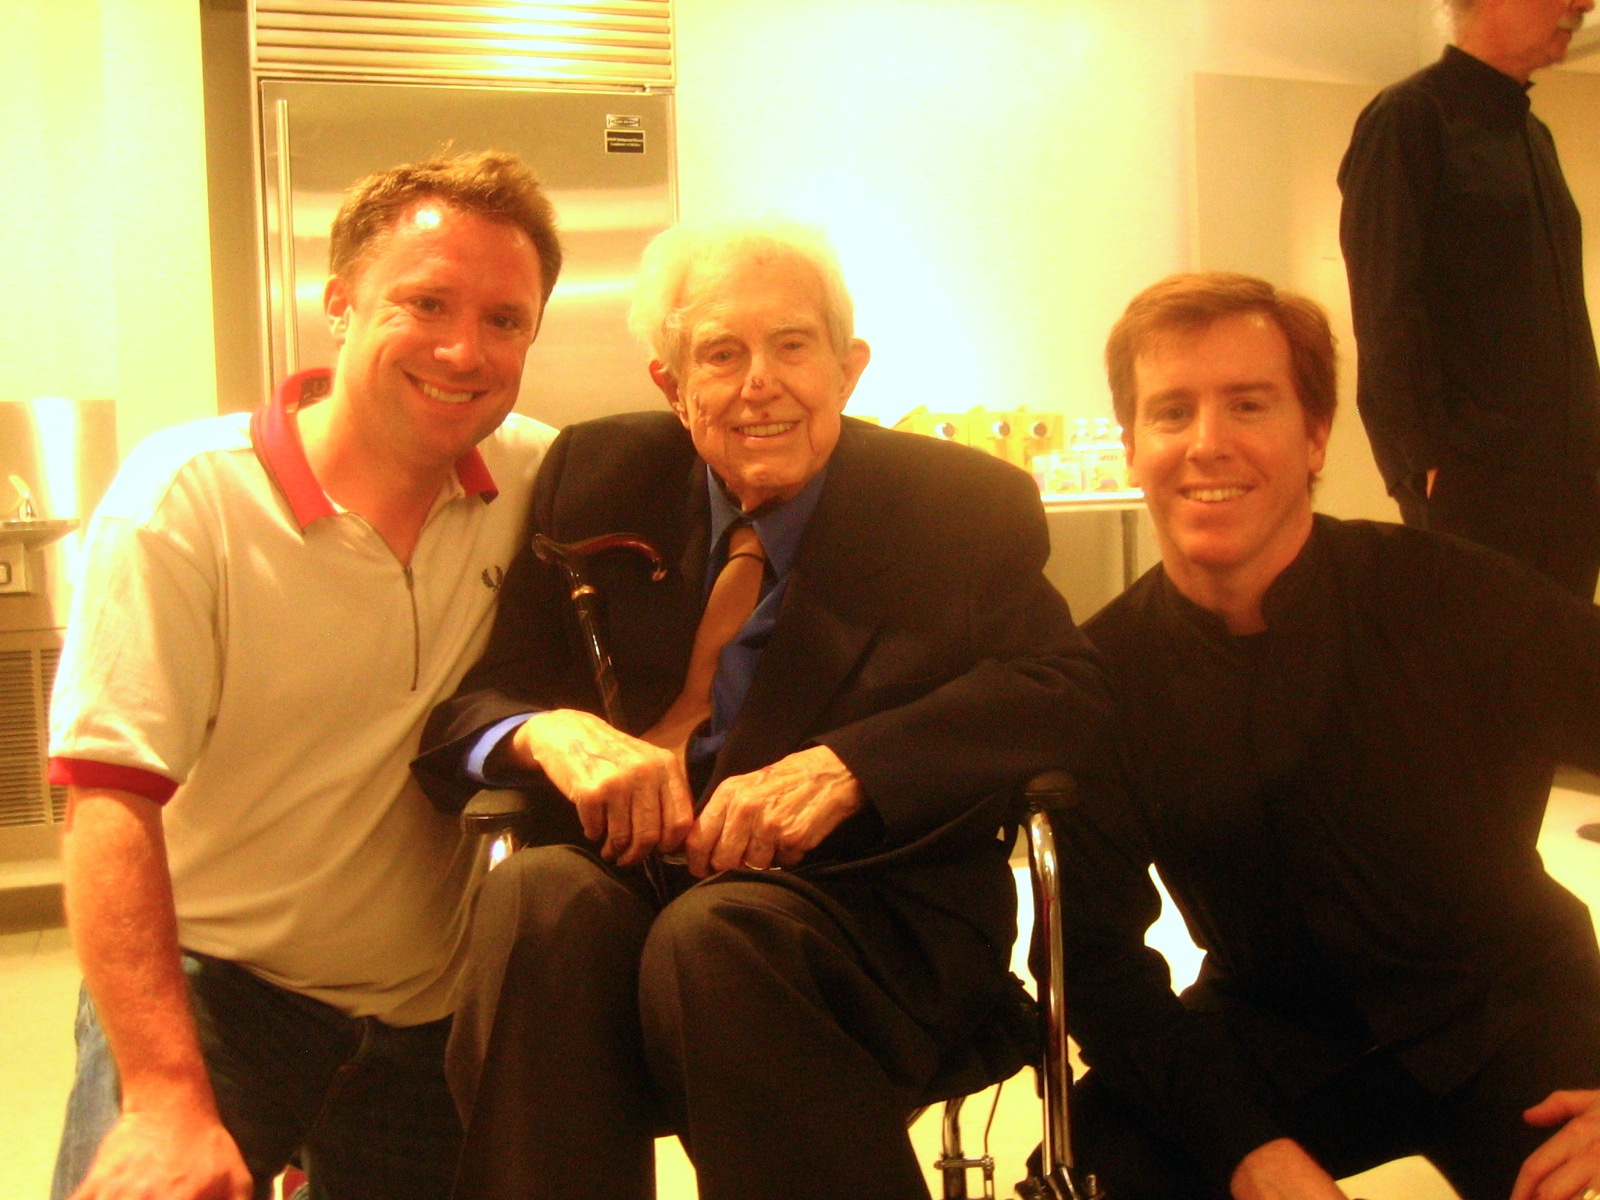 With Elliott Carter and Eric Huebner at the World Premiere of 'Two Controversies and a Conversation' in New York City in June 2012.